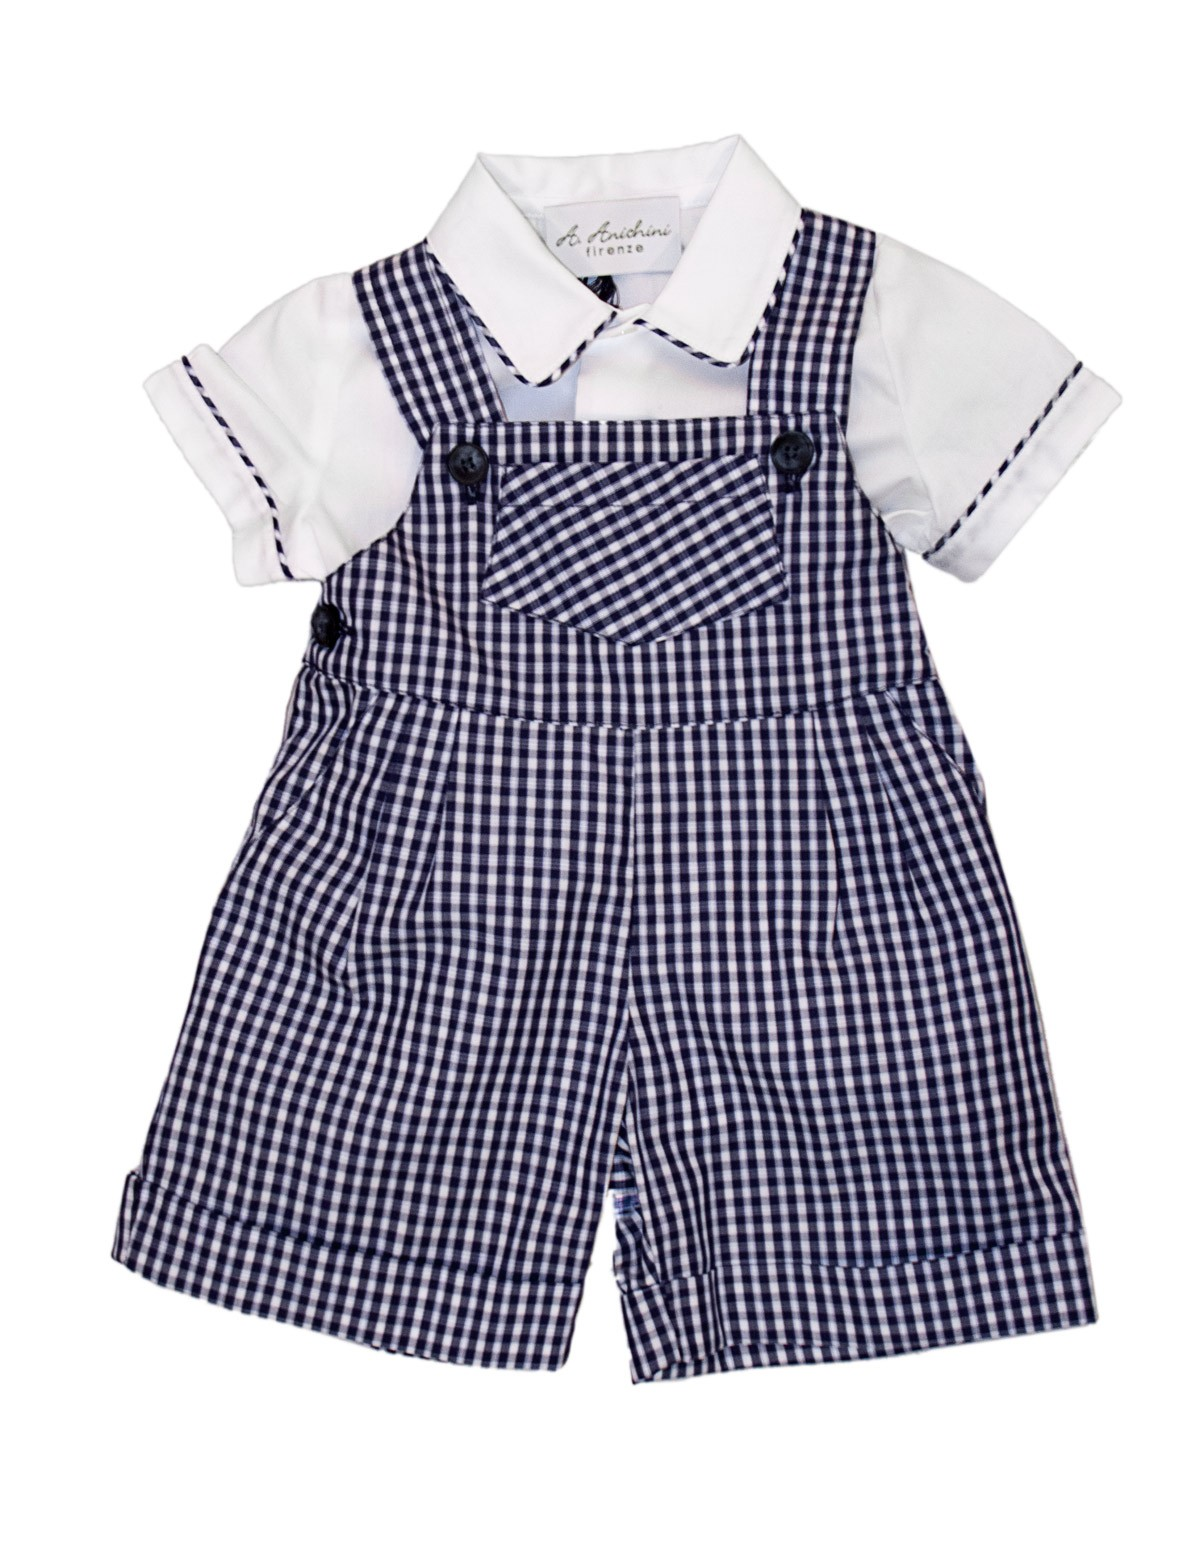 Baby navy checks dungaree with matching shirt